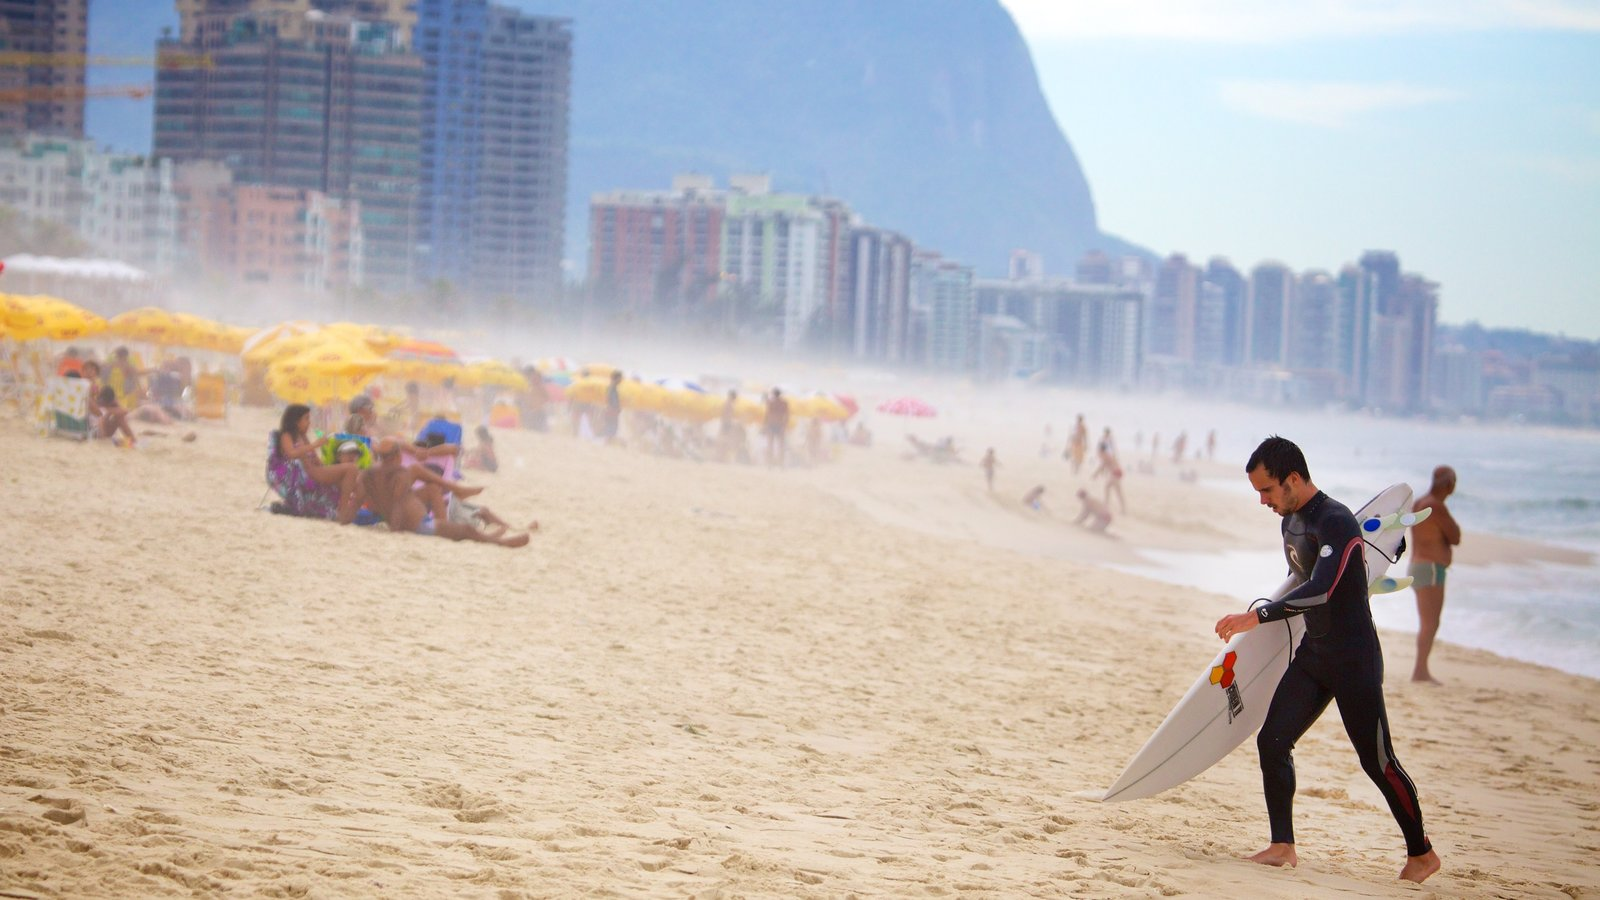 Barra da Tijuca which includes mist or fog and a beach as well as an individual male